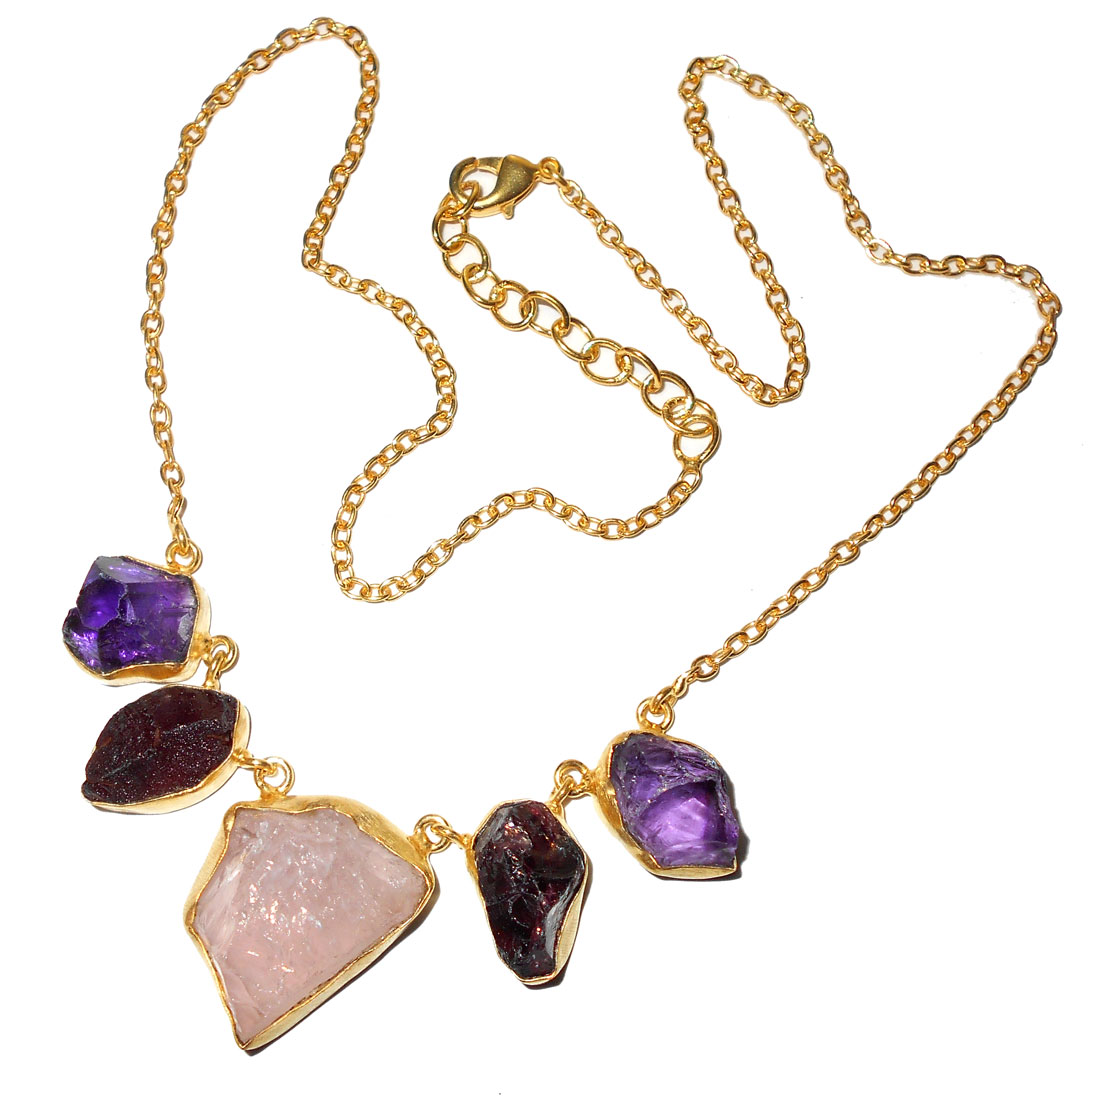 Rose quartz, Amethyst, Garnet B - BSN991- Handmade fashion Necklaces with Brass gold plated